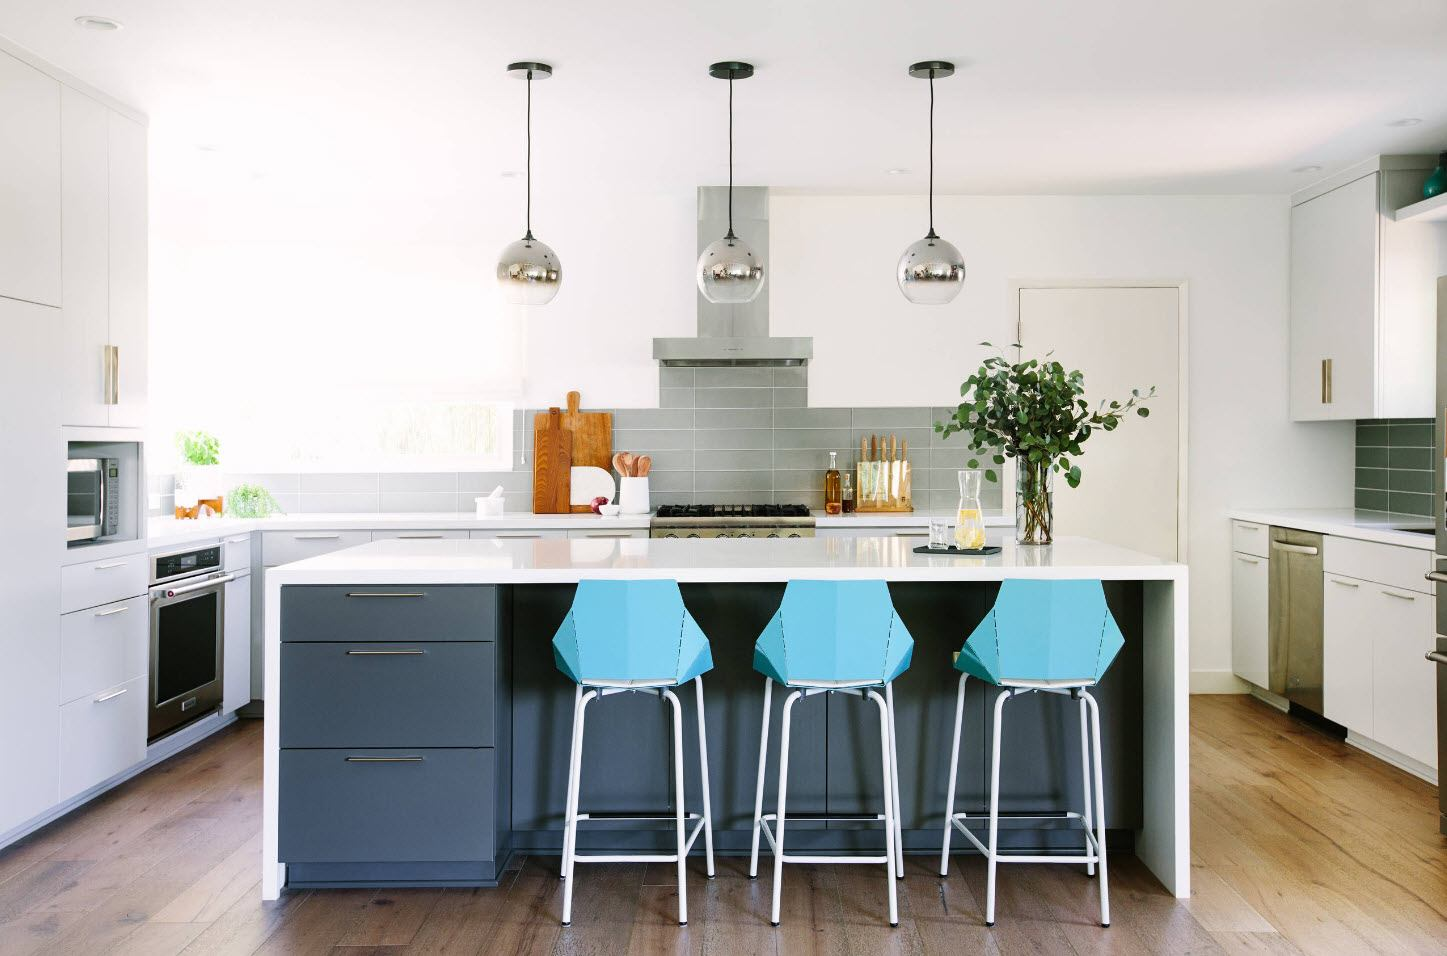 120 Square Feet Kitchen Interior Design Ideas with Photos. Minimalist kitchen with pendant island lighting and plastic chairs